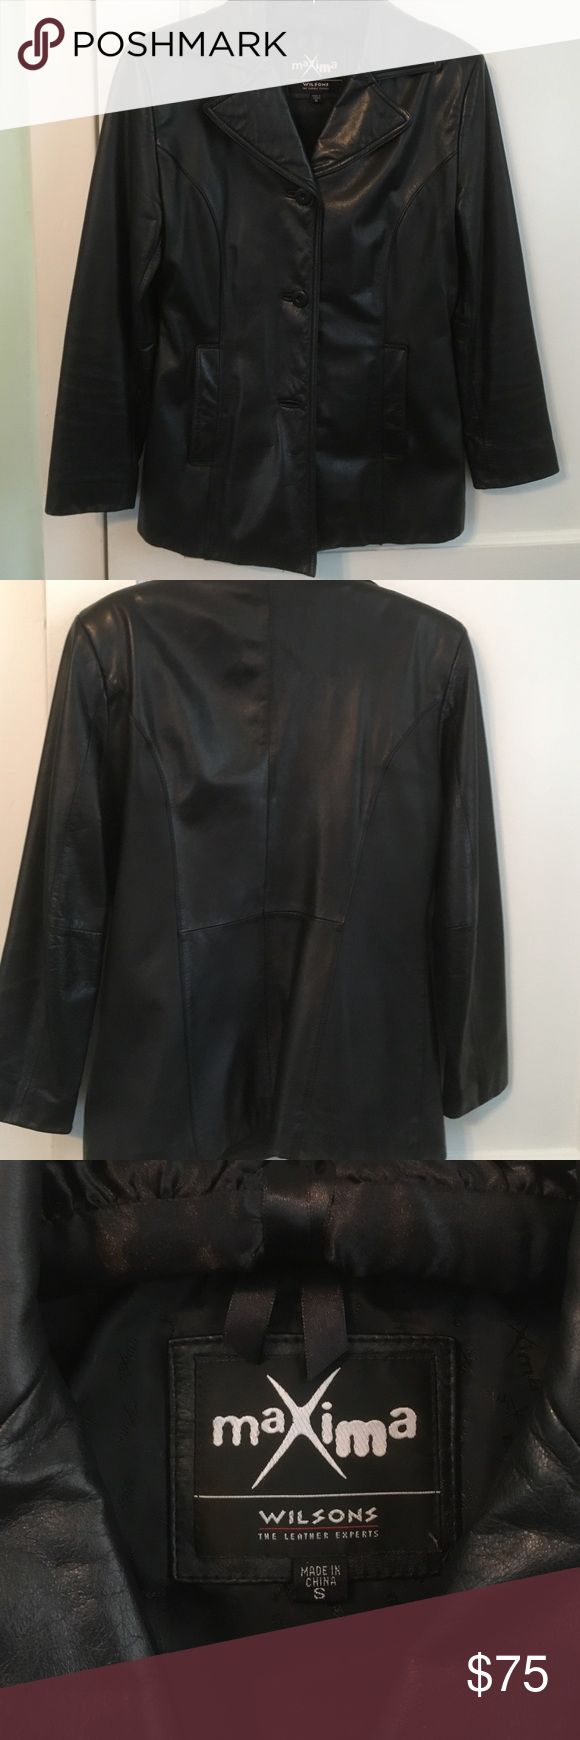 Ladies leather jacket Black leather very soft very good condition lots of nice details  has a spoon the lining but it's inside and doesn't show Maxima by Wilson Jackets & Coats